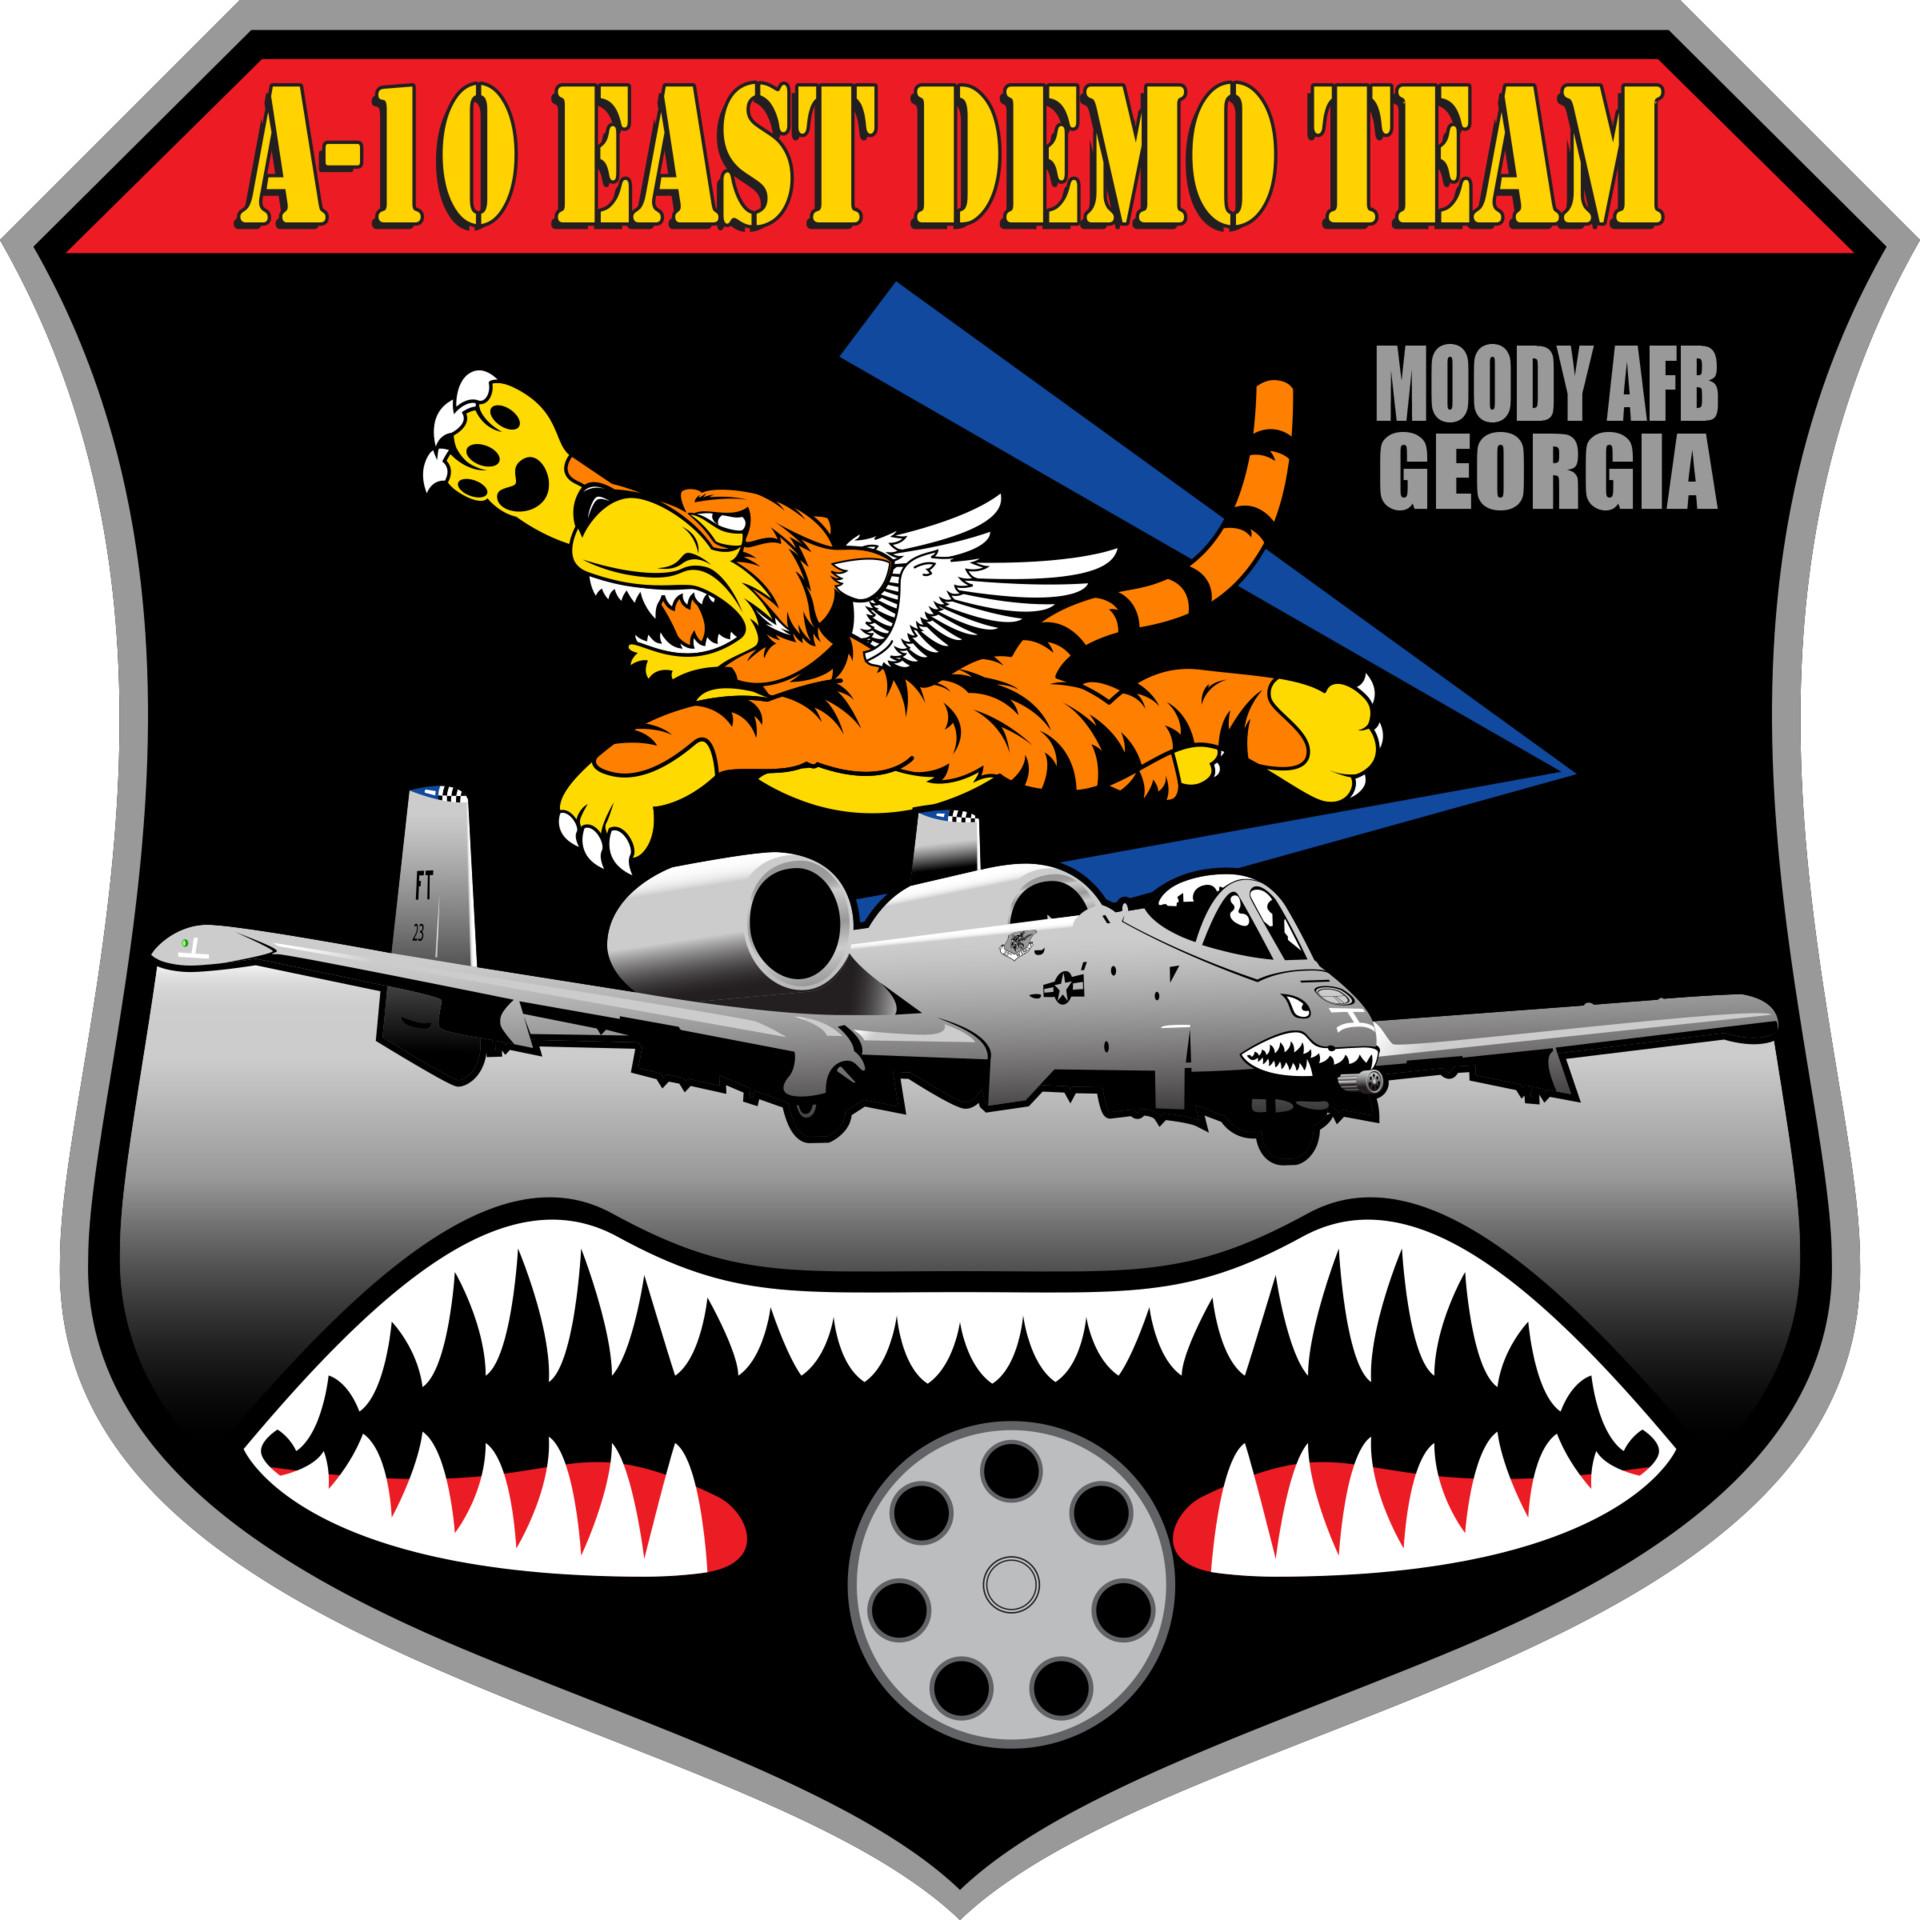 Nicholas hall patches edited 0019 a 10 east demo team1a